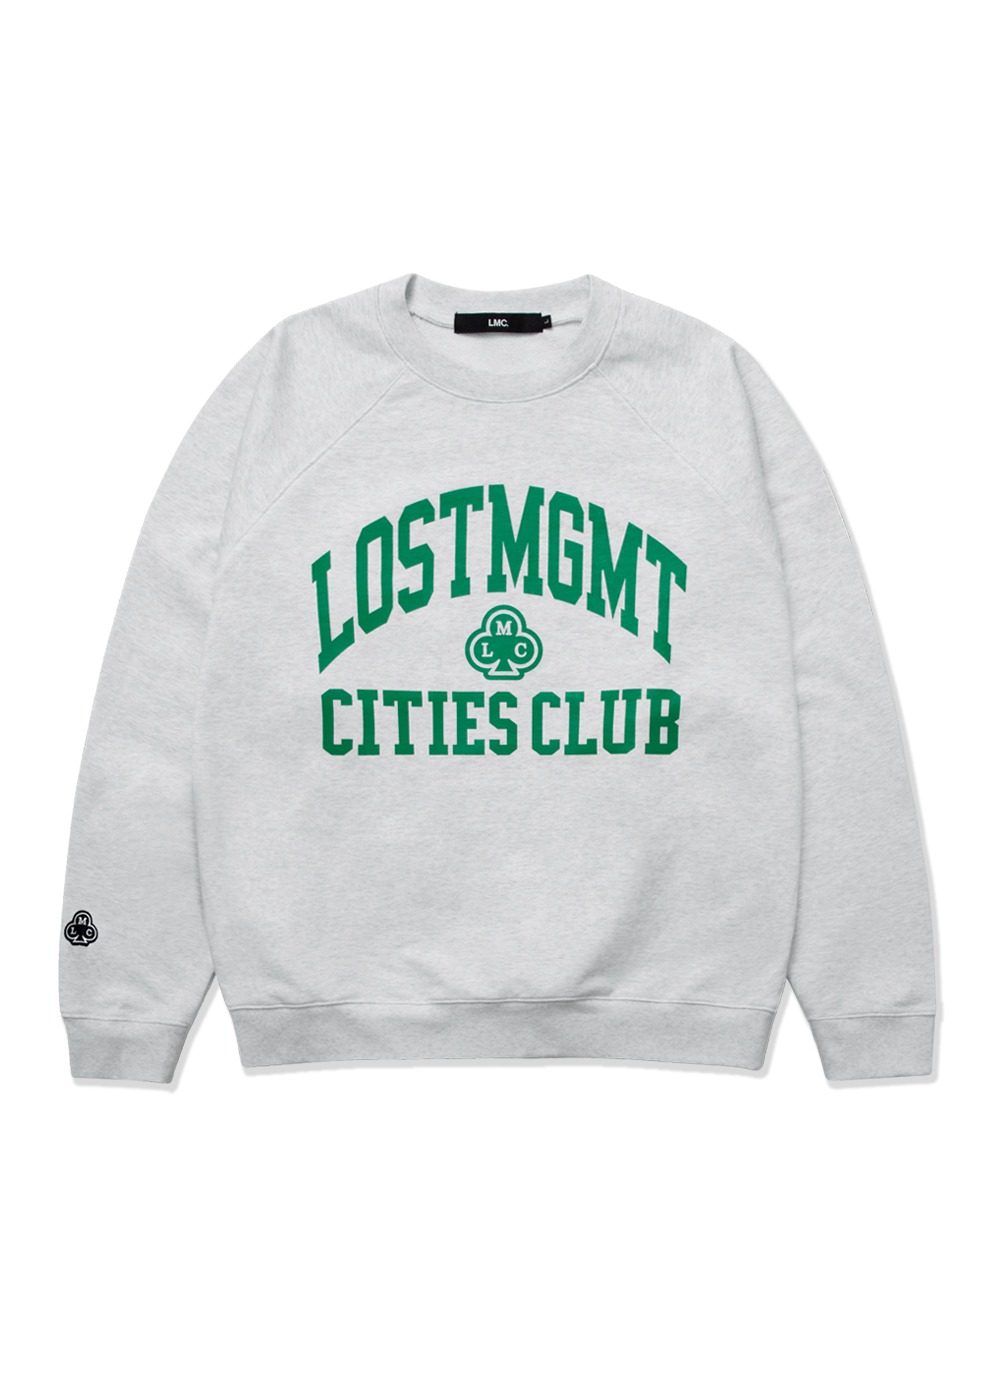 LMC CLUB ATHLETIC RAGLAN SWEATSHIRT lt. heather gray